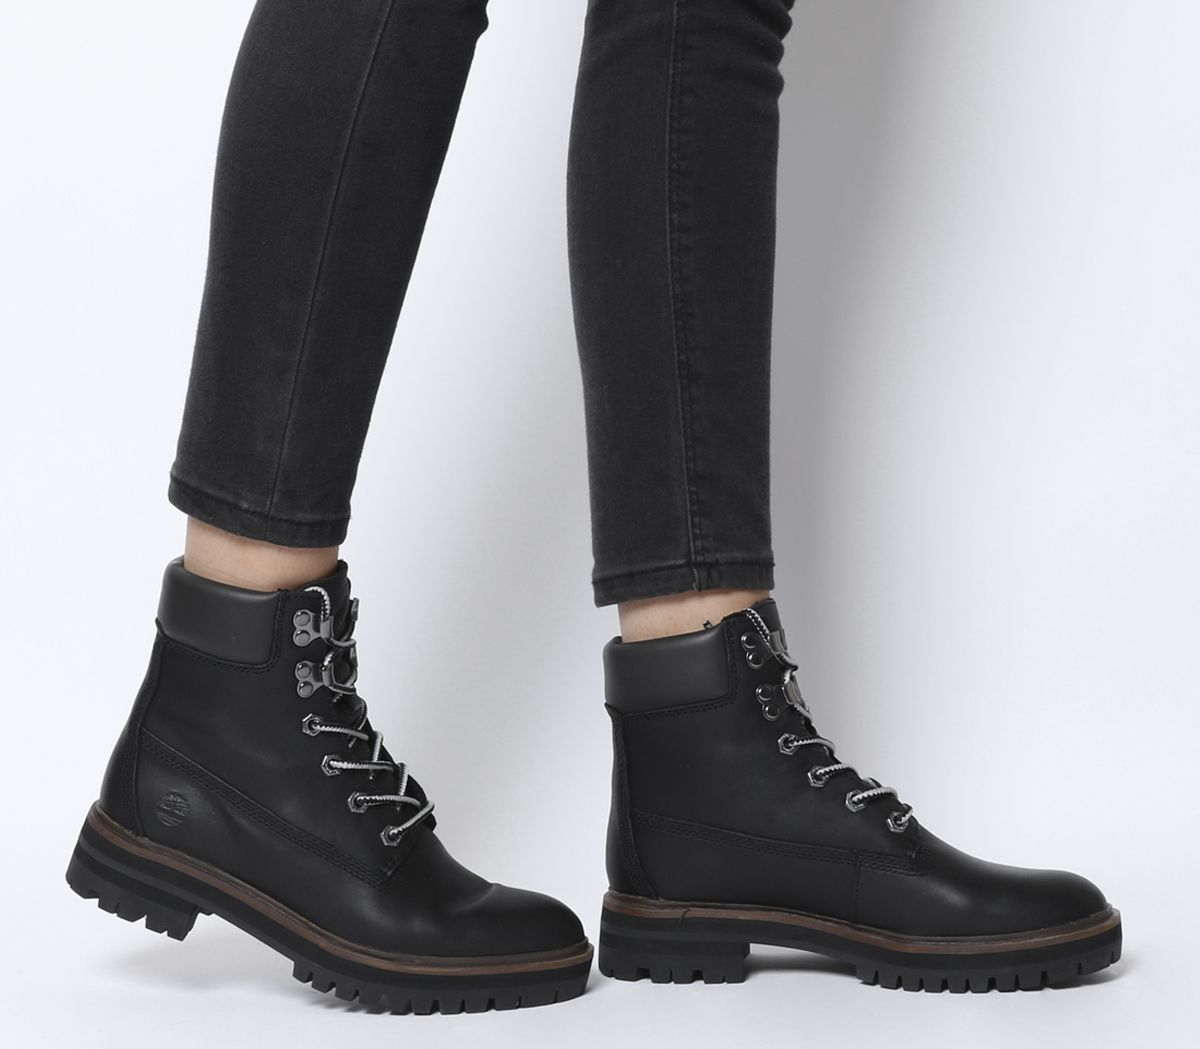 f447fbfd287 Timberland London Square 6 Inch Boots Jet Black - Ankle Boots